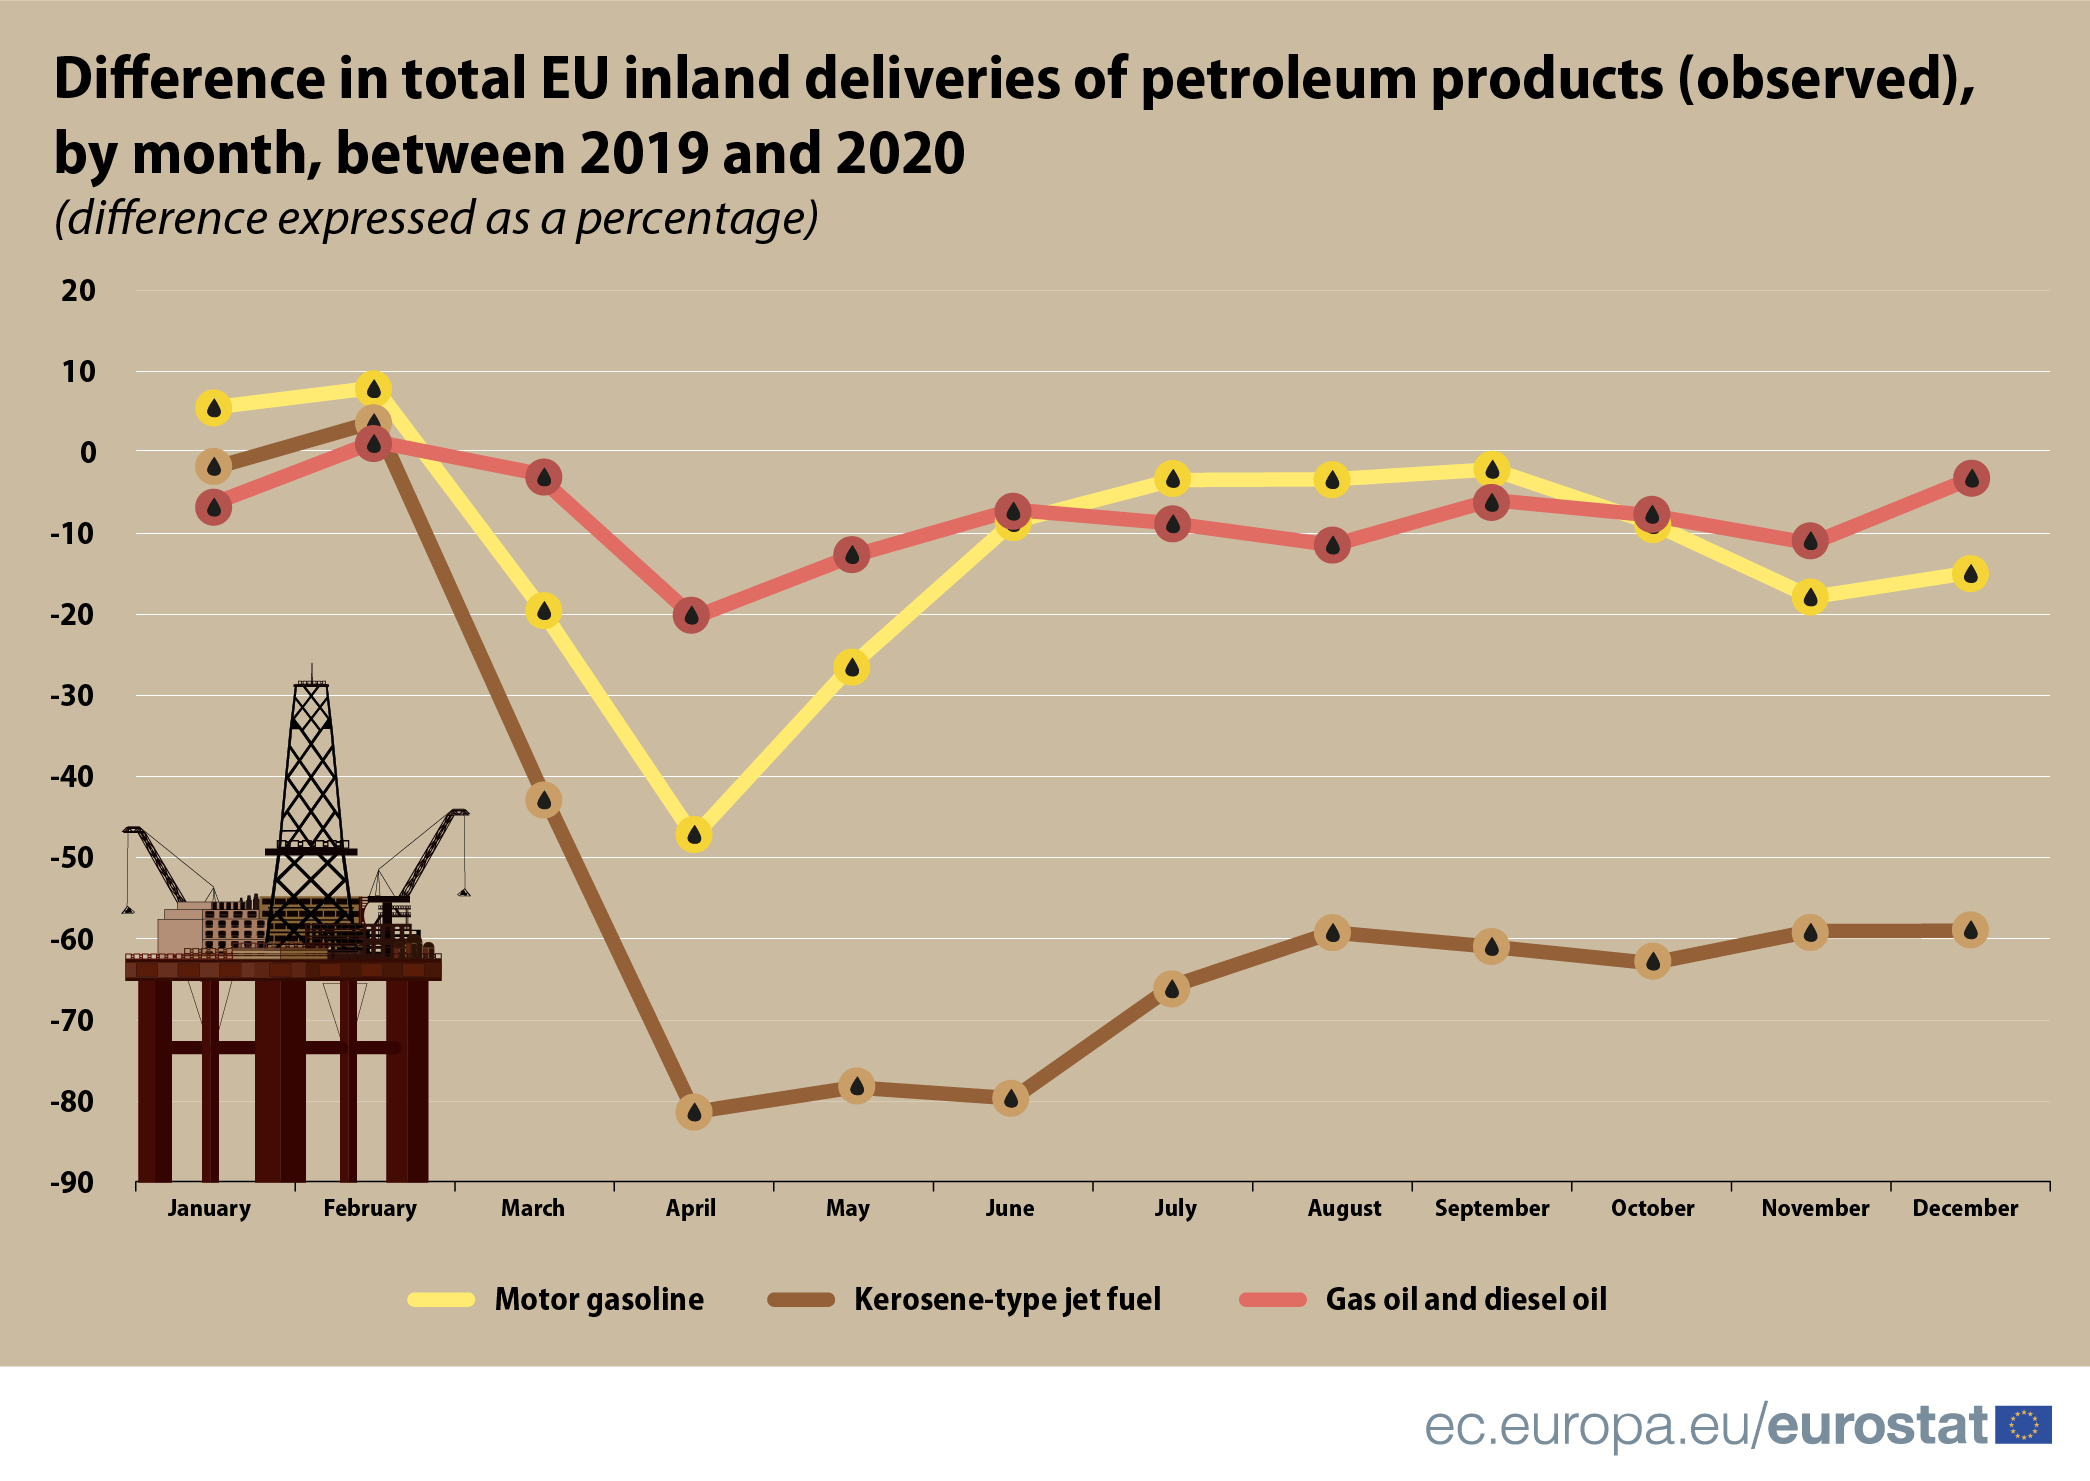 Infographic: Difference in total EU inland deliveries for petroleum products